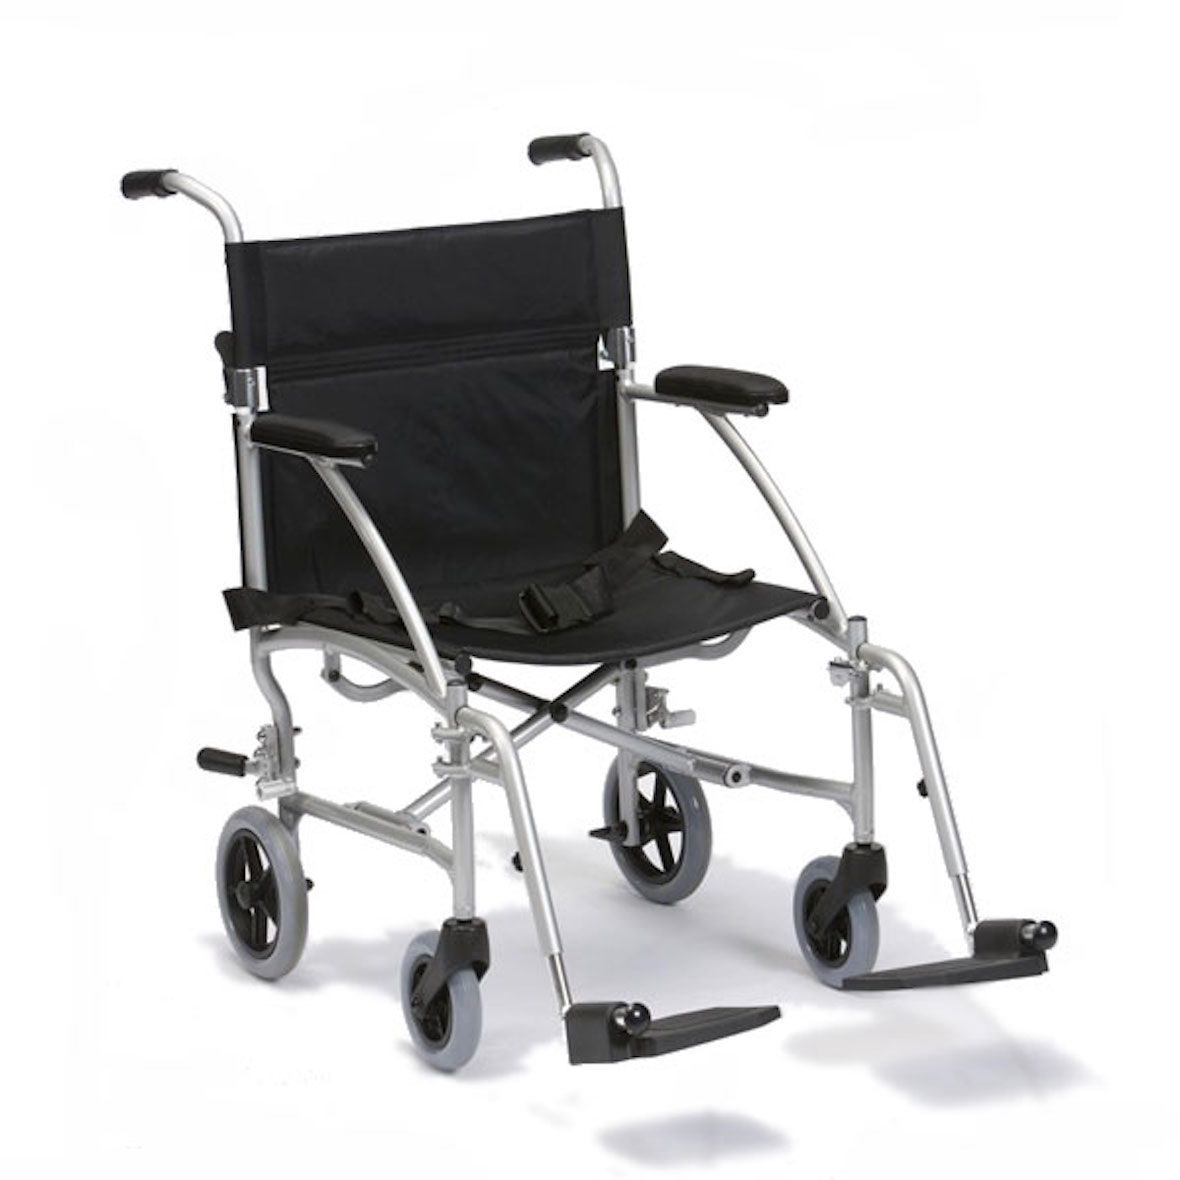 Side view of the Drive Medical aluminium travelling wheelchair